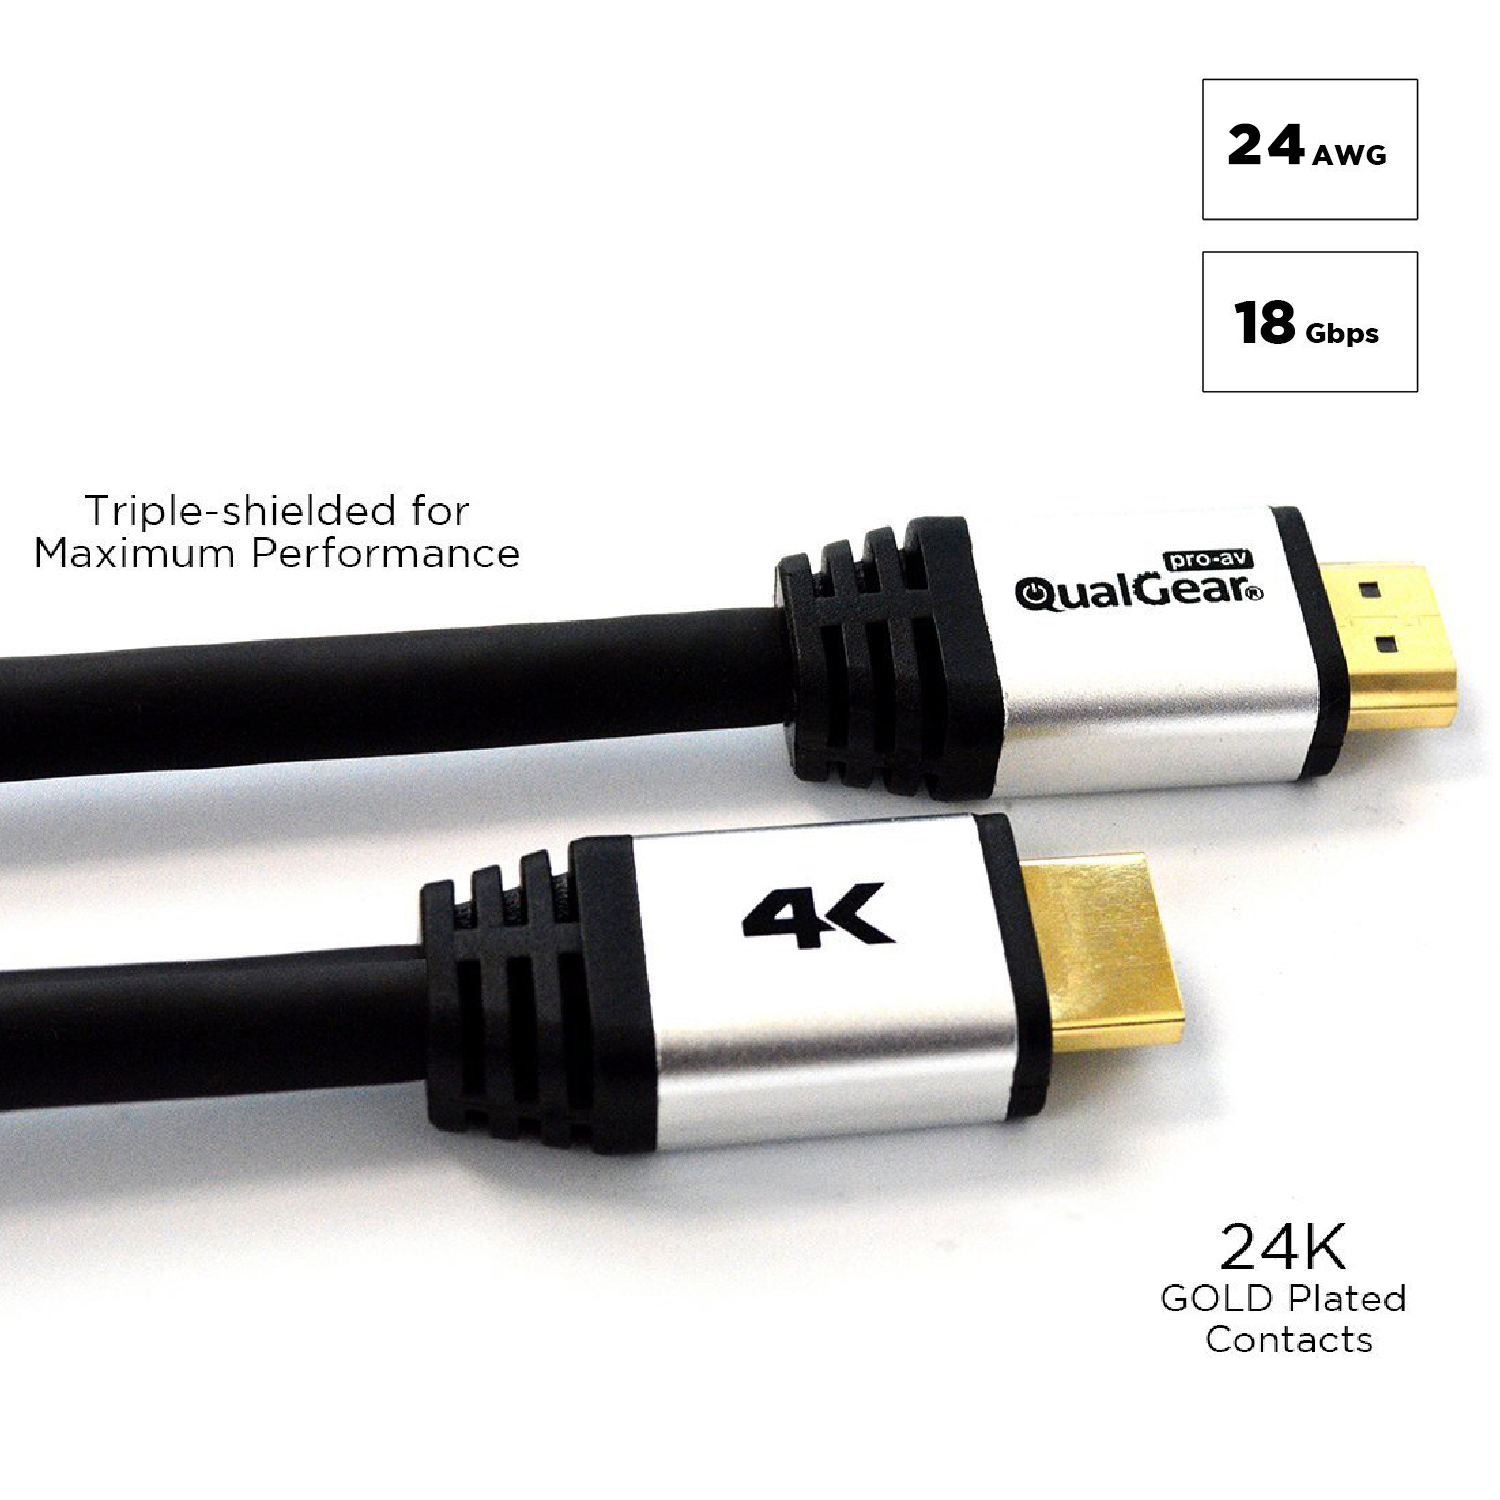 Qualgear 100 Feet High-Speed Long HDMI 2.0 Cable with 24K Gold Plated Contacts and RedMere Active, Supports 4K Ultra HD, 3D, 18 Gbps, Audio Return Channel,CL3 Rated for In-Wall Use (QG-CBL-HD20-100FT)